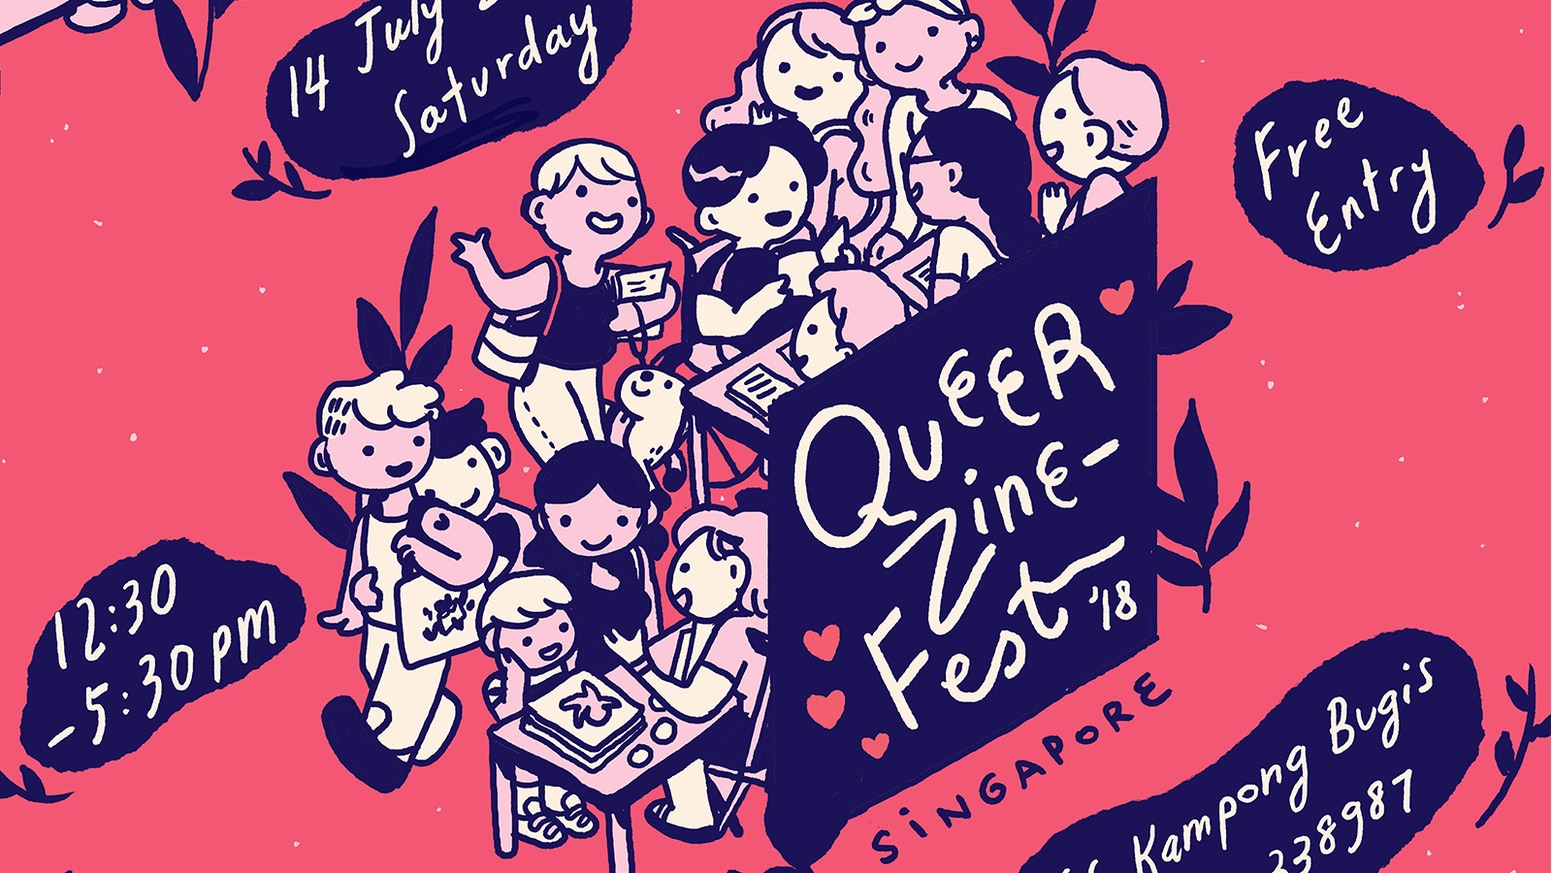 We made it! We couldn't have done it without you! Queer stories, art, music, and community come together in Singapore on the 14th July. See you there!